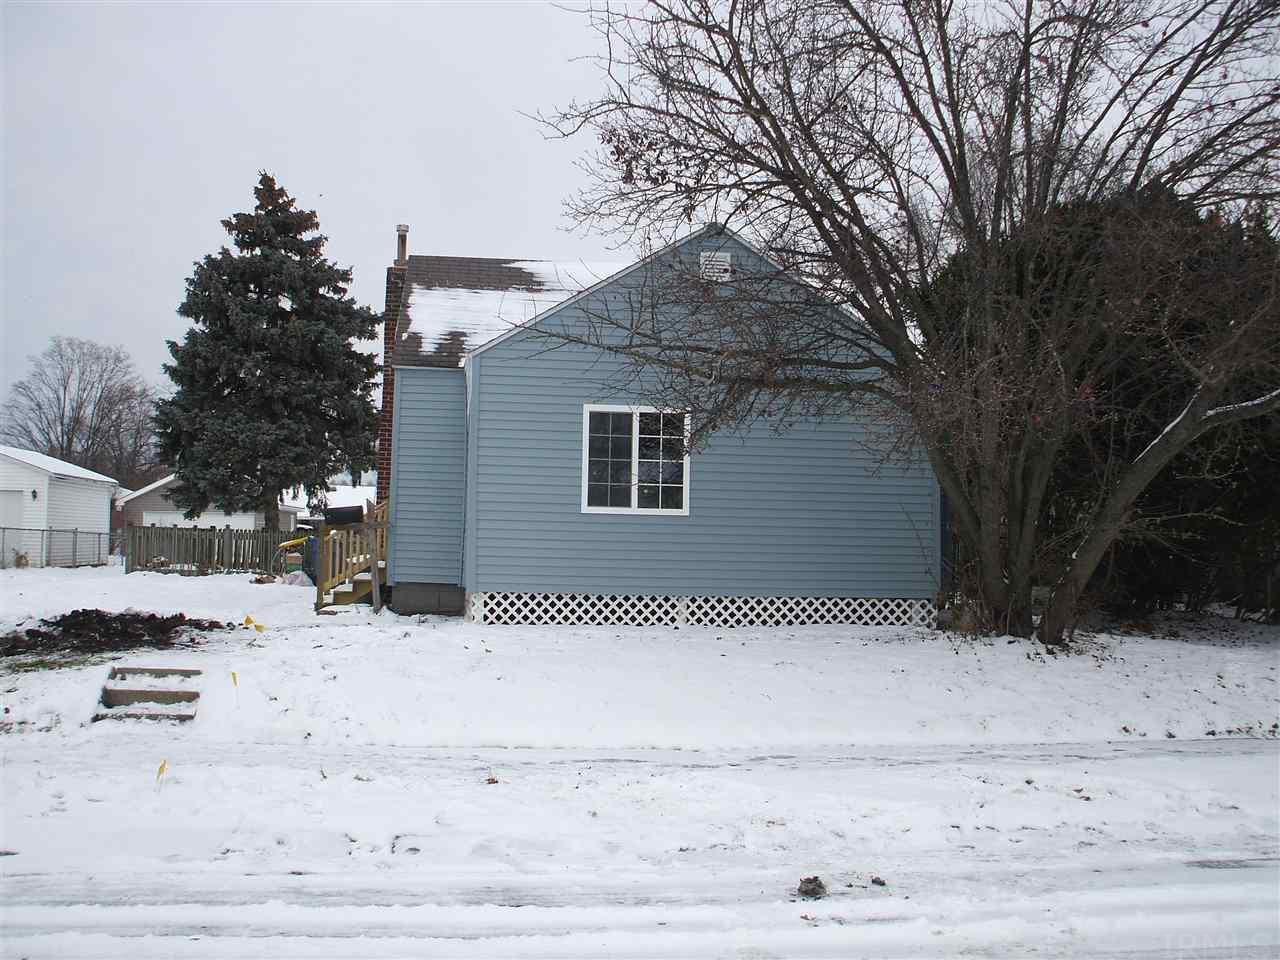 802 E 9TH Mishawaka, IN 46544